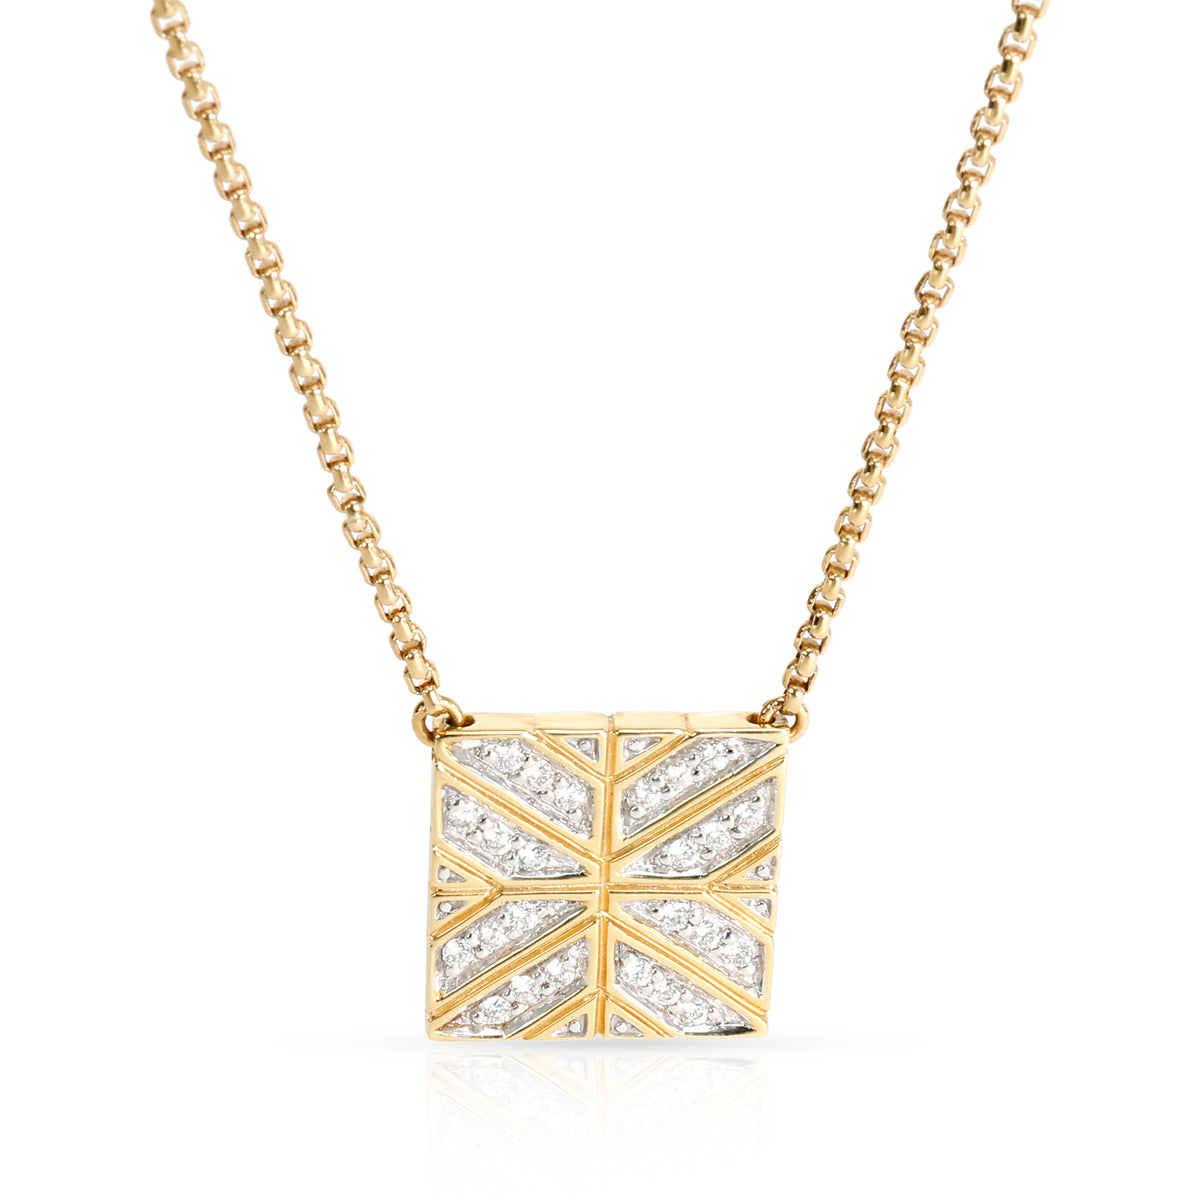 John Hardy Modern Chain Collection Diamond Fashion Necklace in 18K Yellow Gold 0